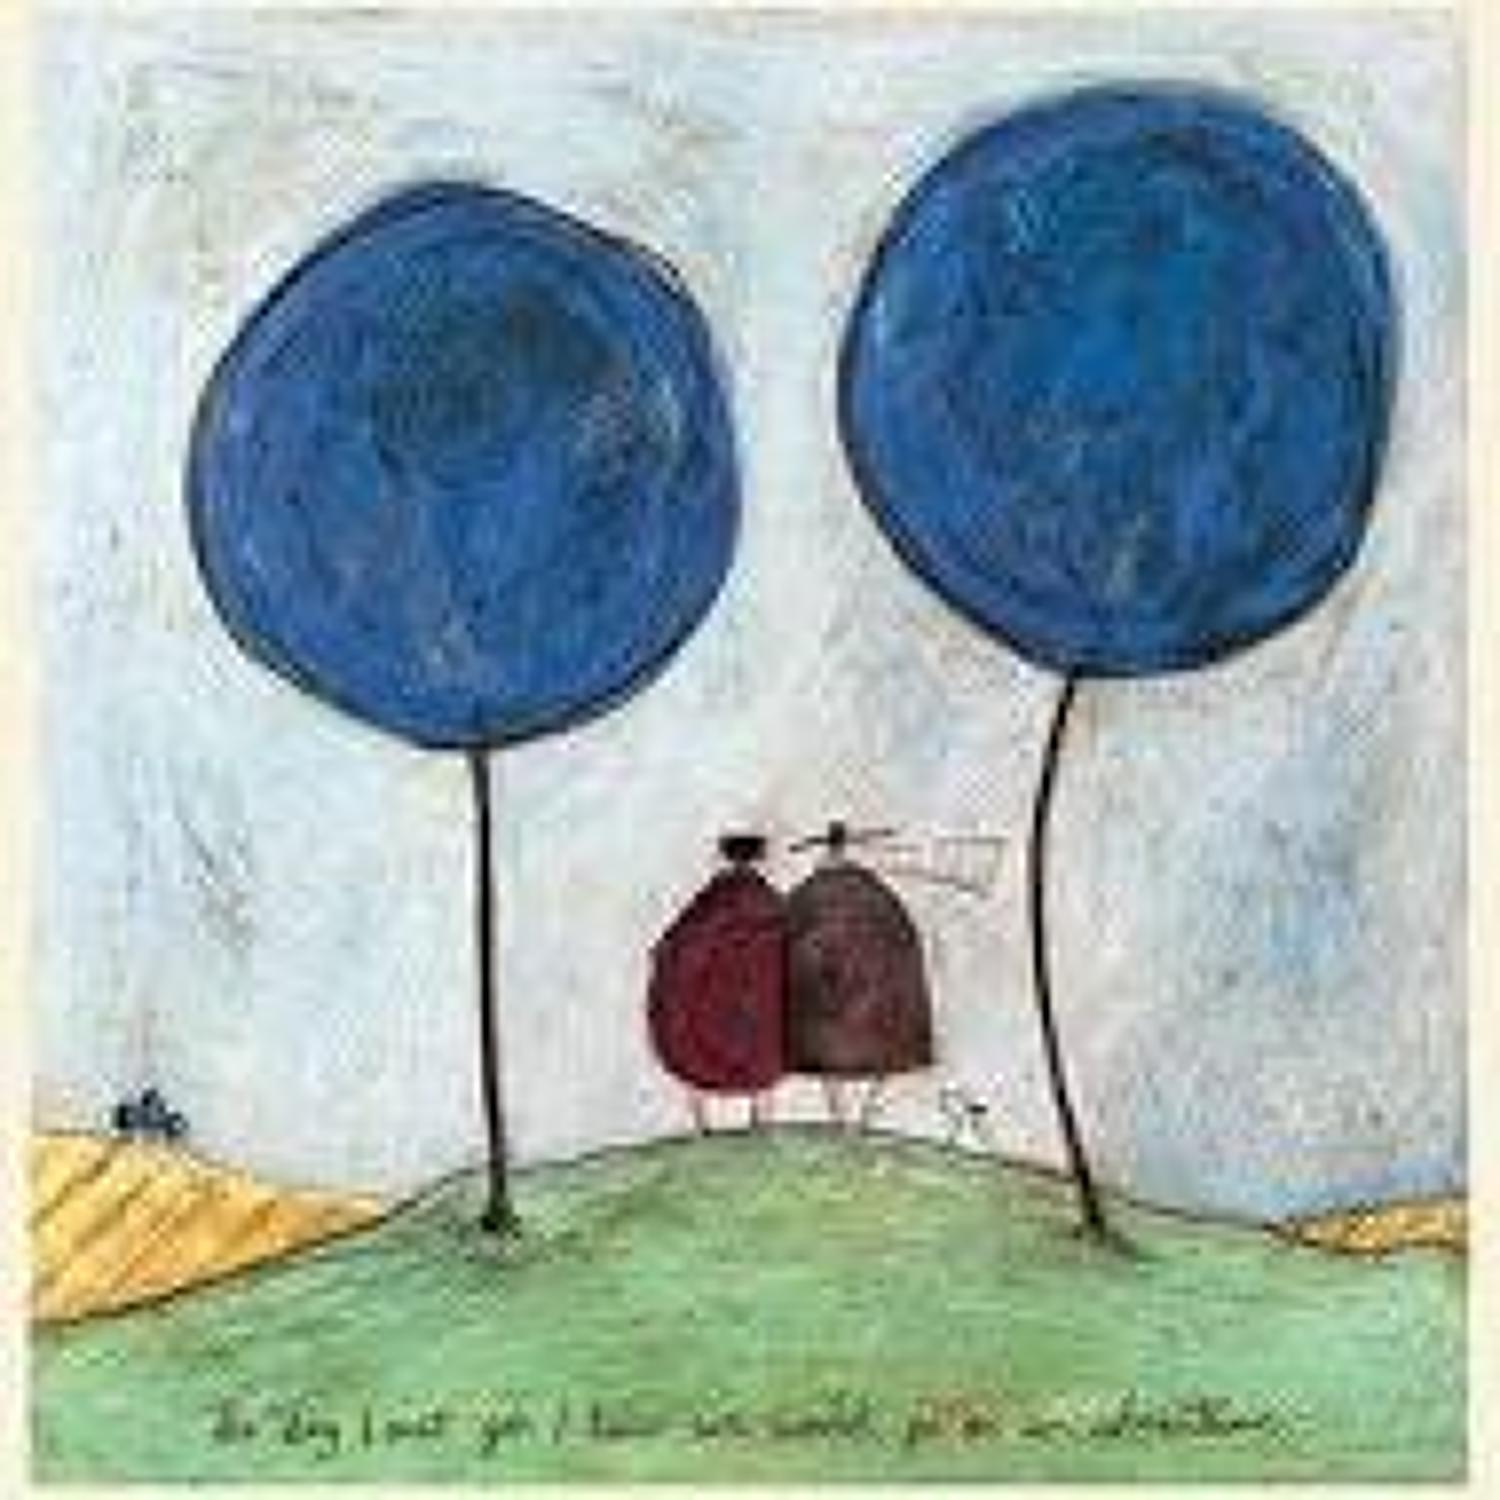 Sam Toft - the day i met you